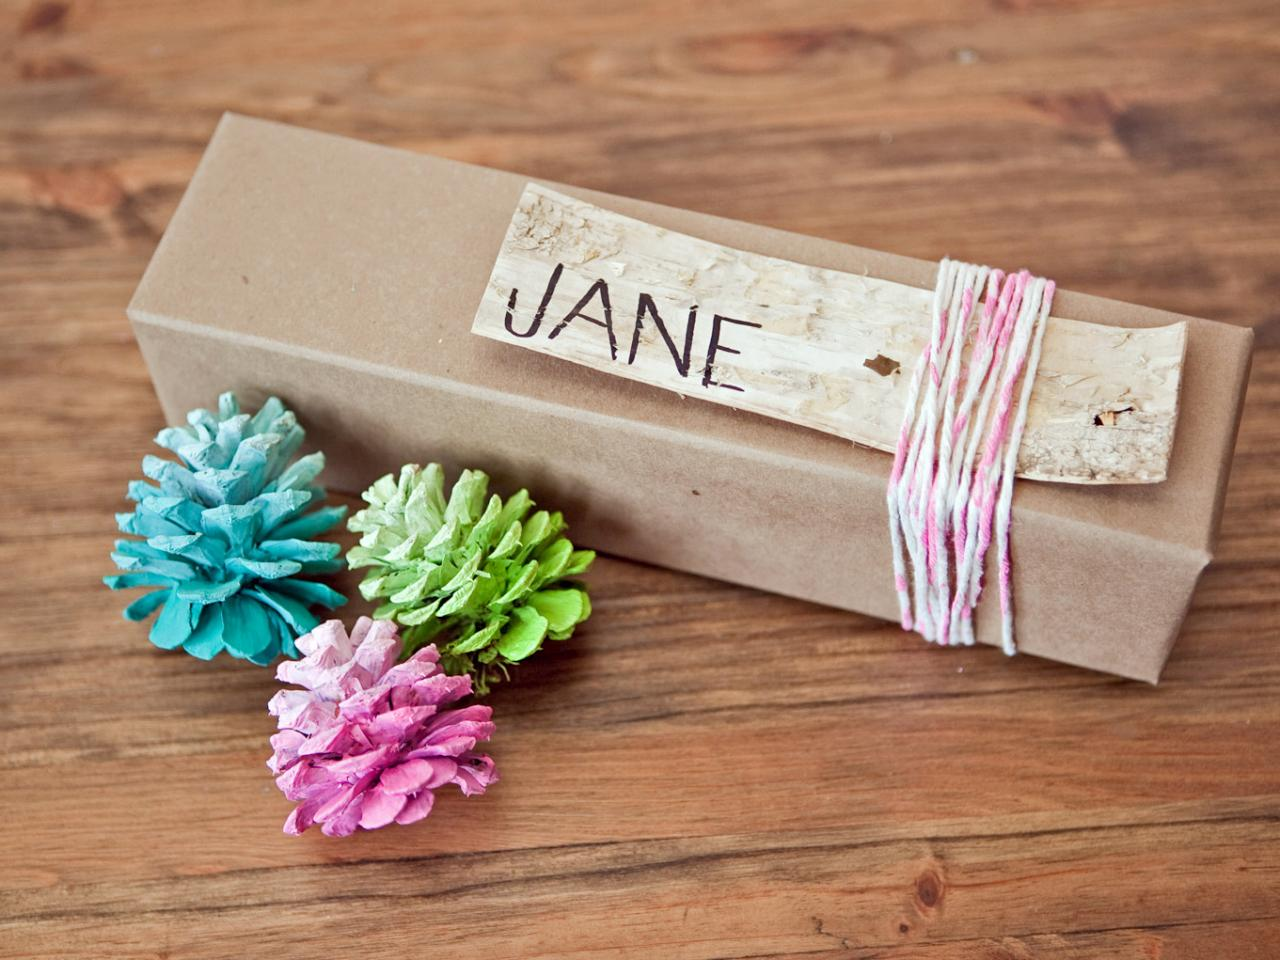 Pine Cone Ornament DIY Favor